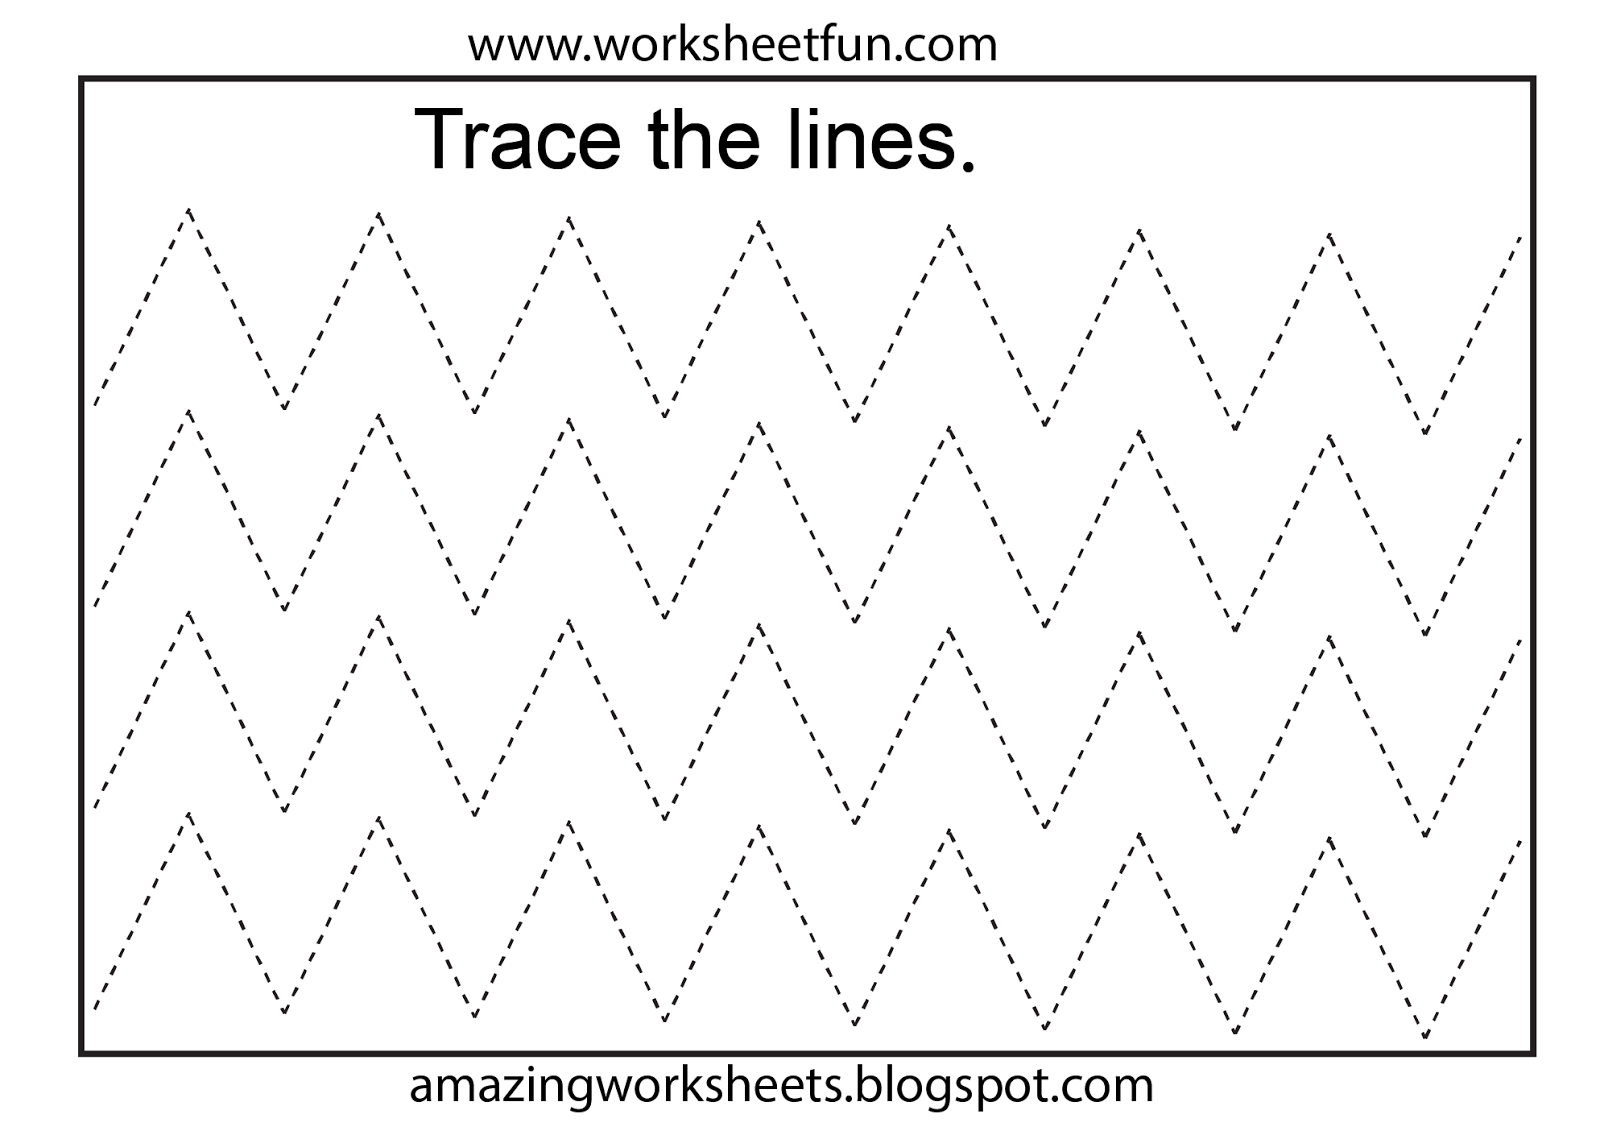 Worksheets Fine Motor Skills Worksheets free printable tracing worksheets preschool line cutting fine motor